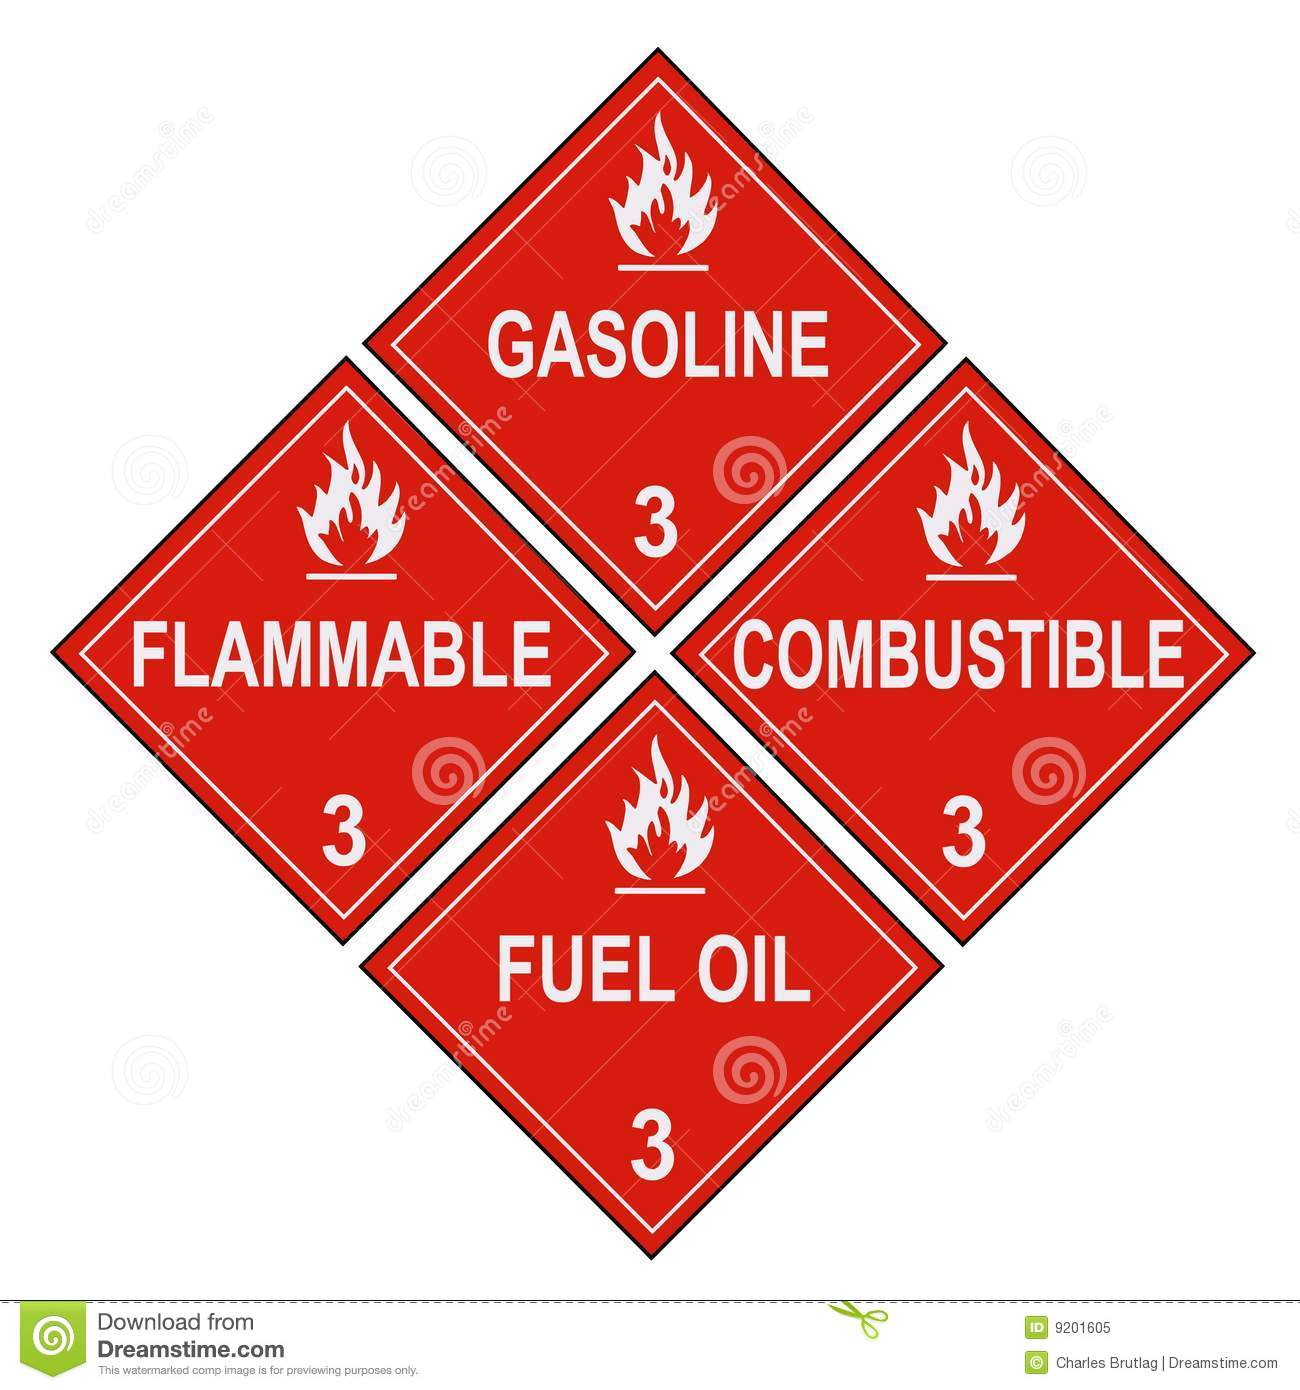 But It Wasn't Flammable Before! GHS Changed the Meaning of 'Flammable Liquids'